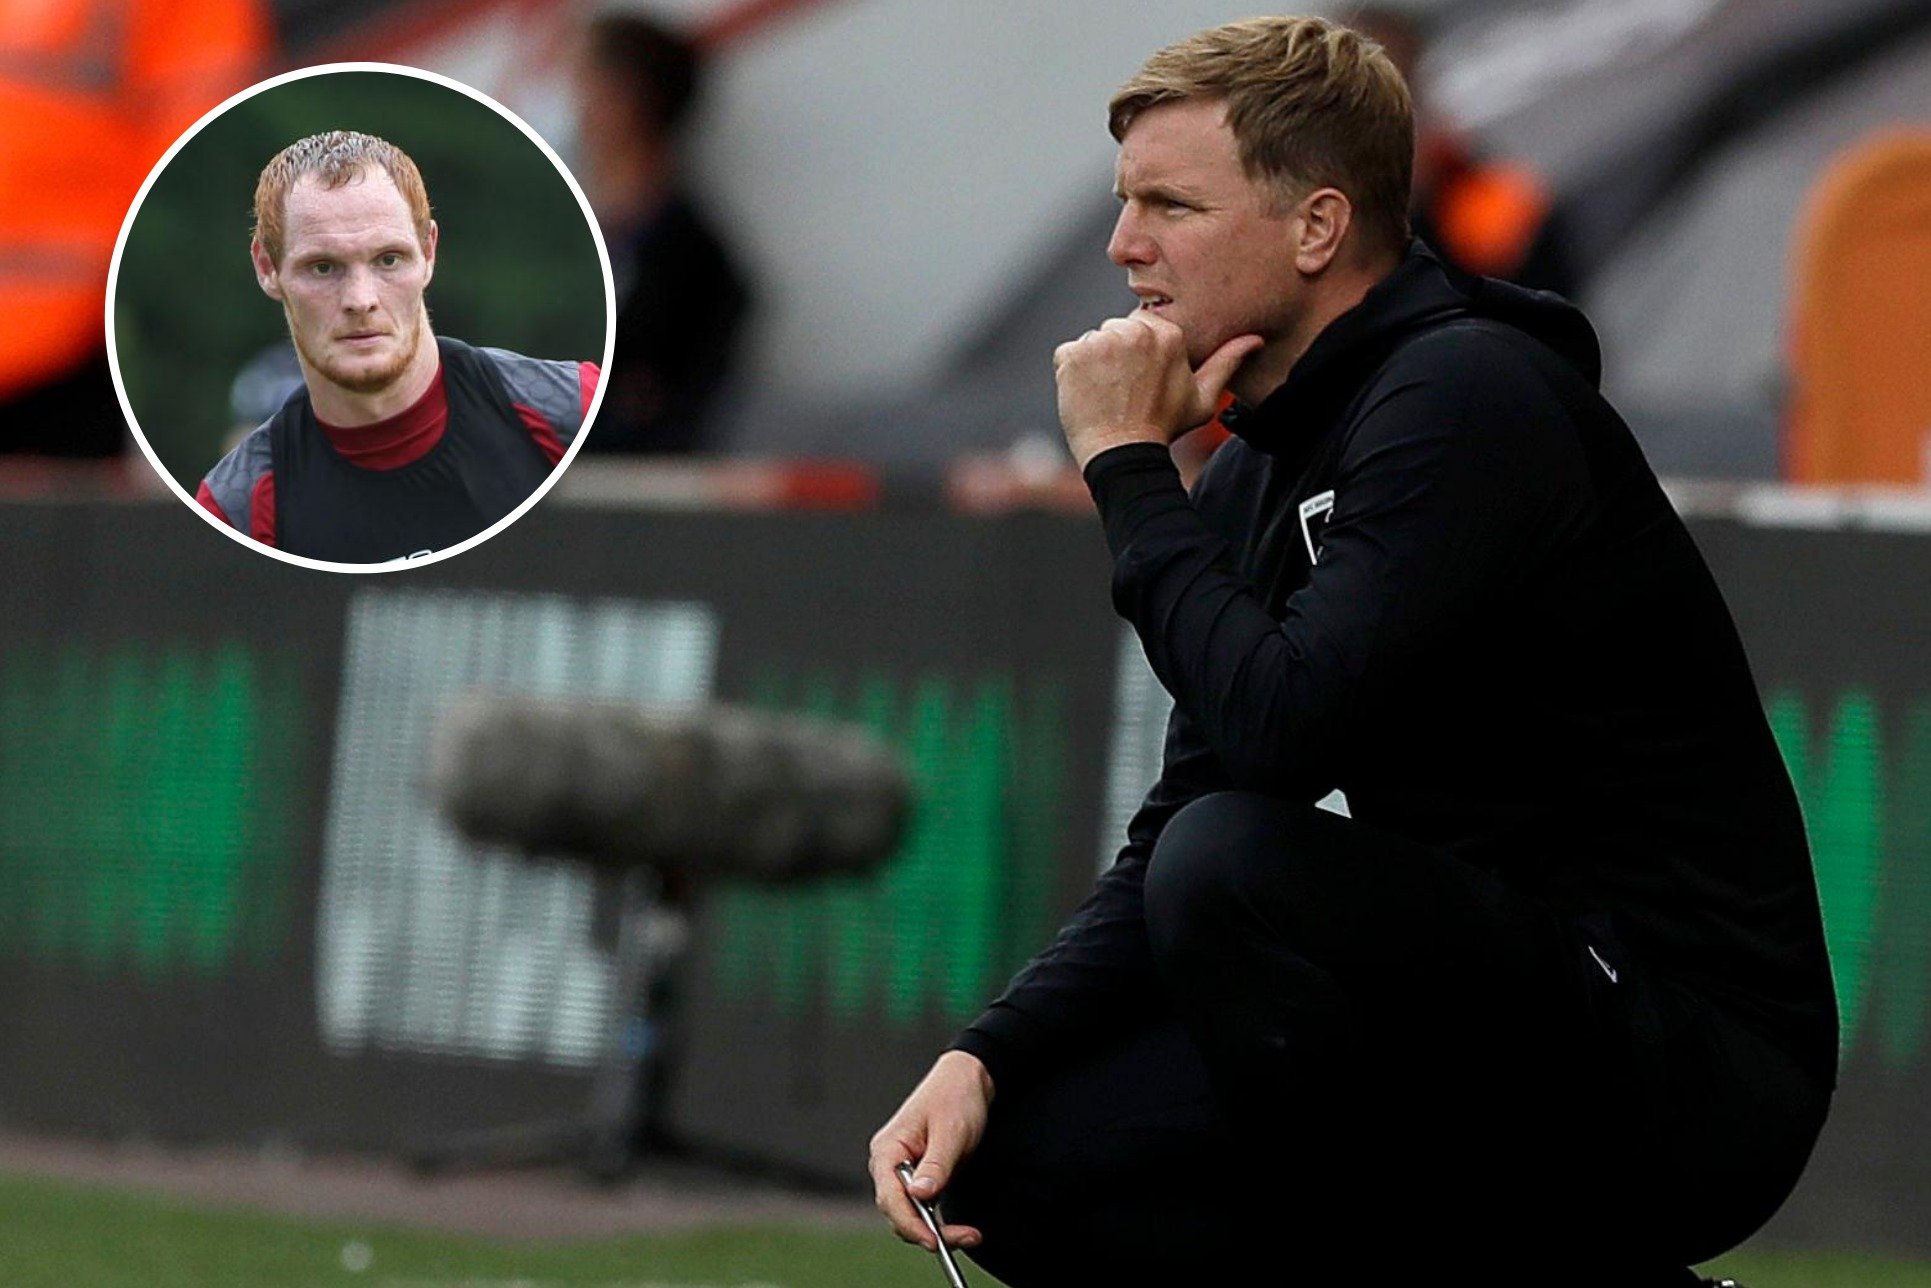 'Ed's too good a manager not to be in the game' - Shaun MacDonald backs former boss Howe to 'do an amazing job somewhere else' after Cherries exit